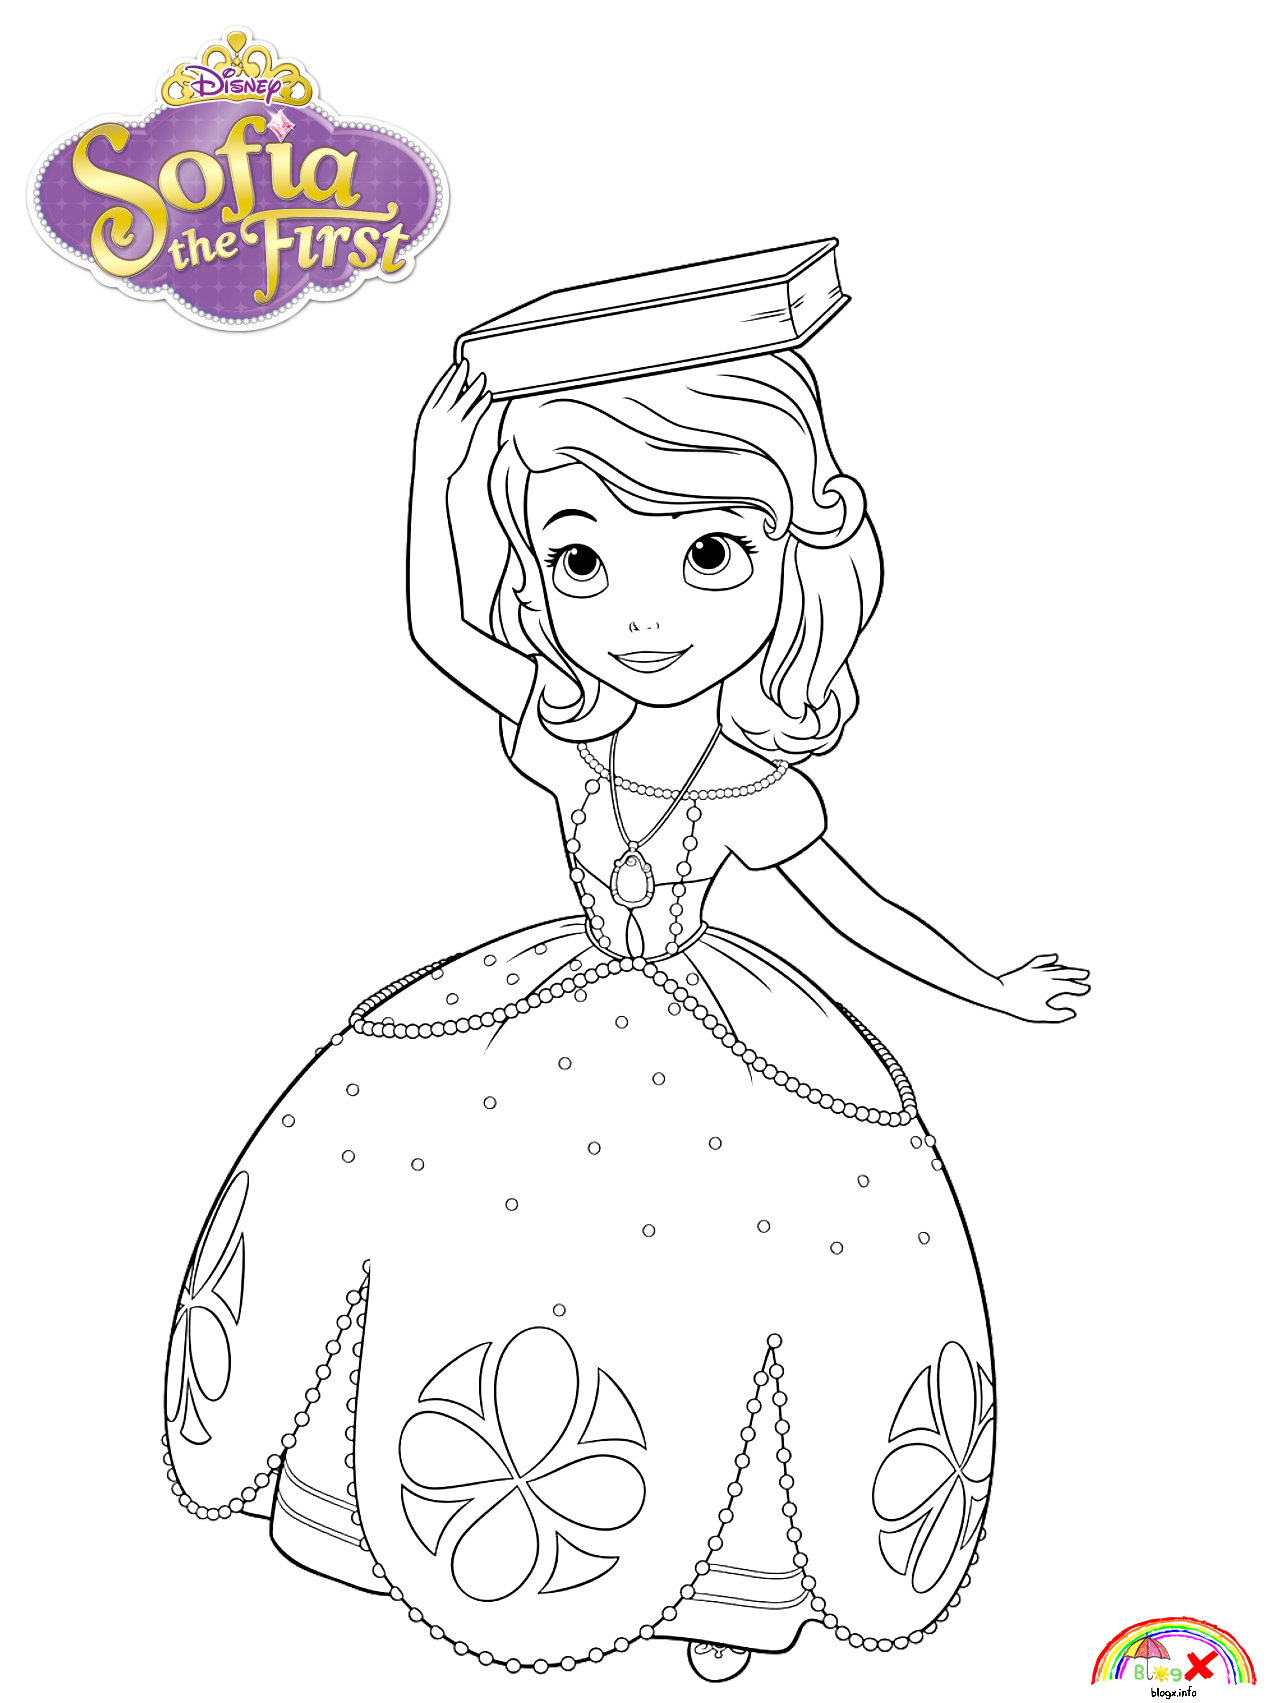 Pin By Shawna Vilim On Coloring Pages Coloring Pages Princess Sofia The First Free Coloring Pages